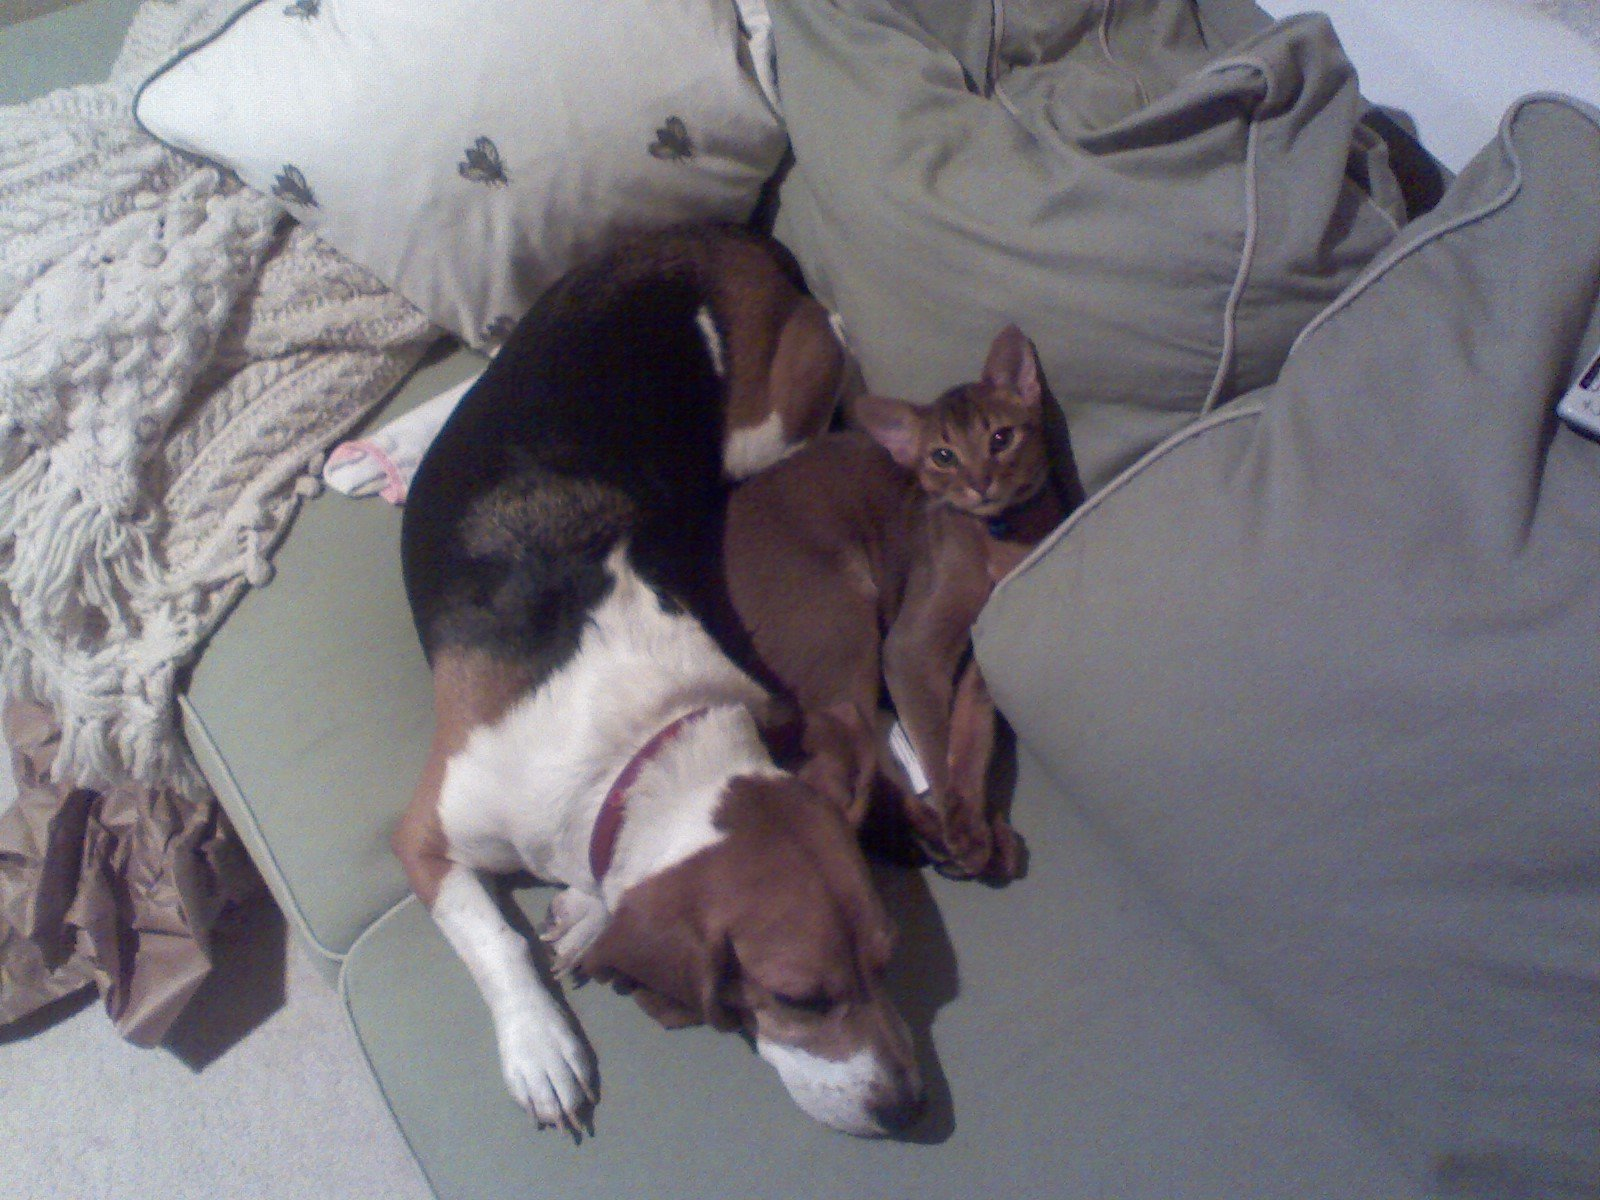 Dog and cat lying on a bed